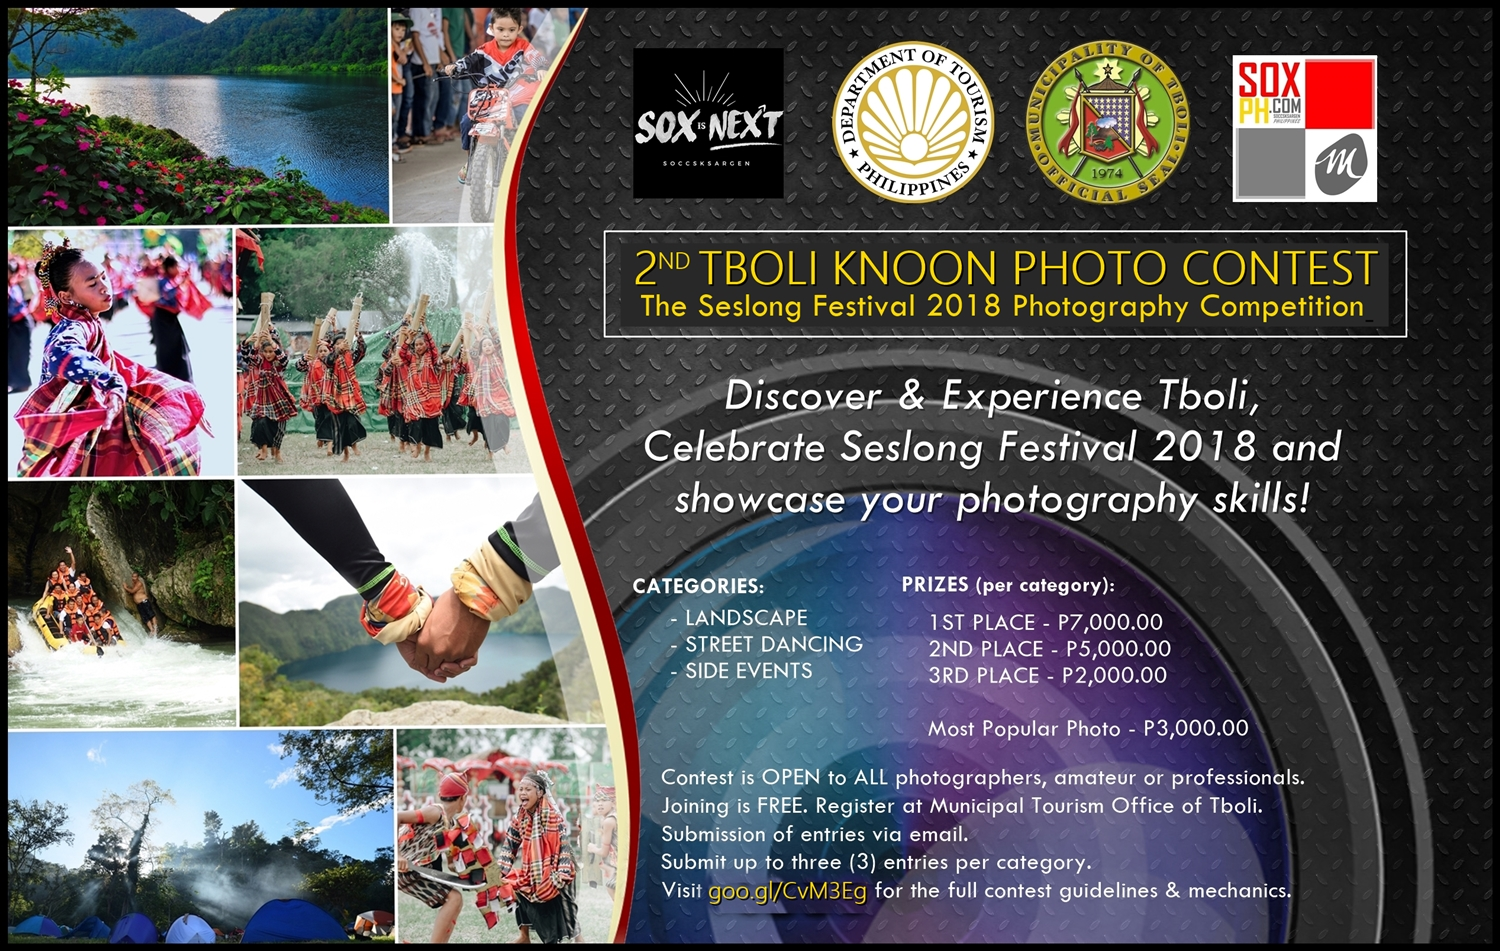 2nd Tboli Knoon Photo Contest: The Seslong Festival 2018 Photography Competition